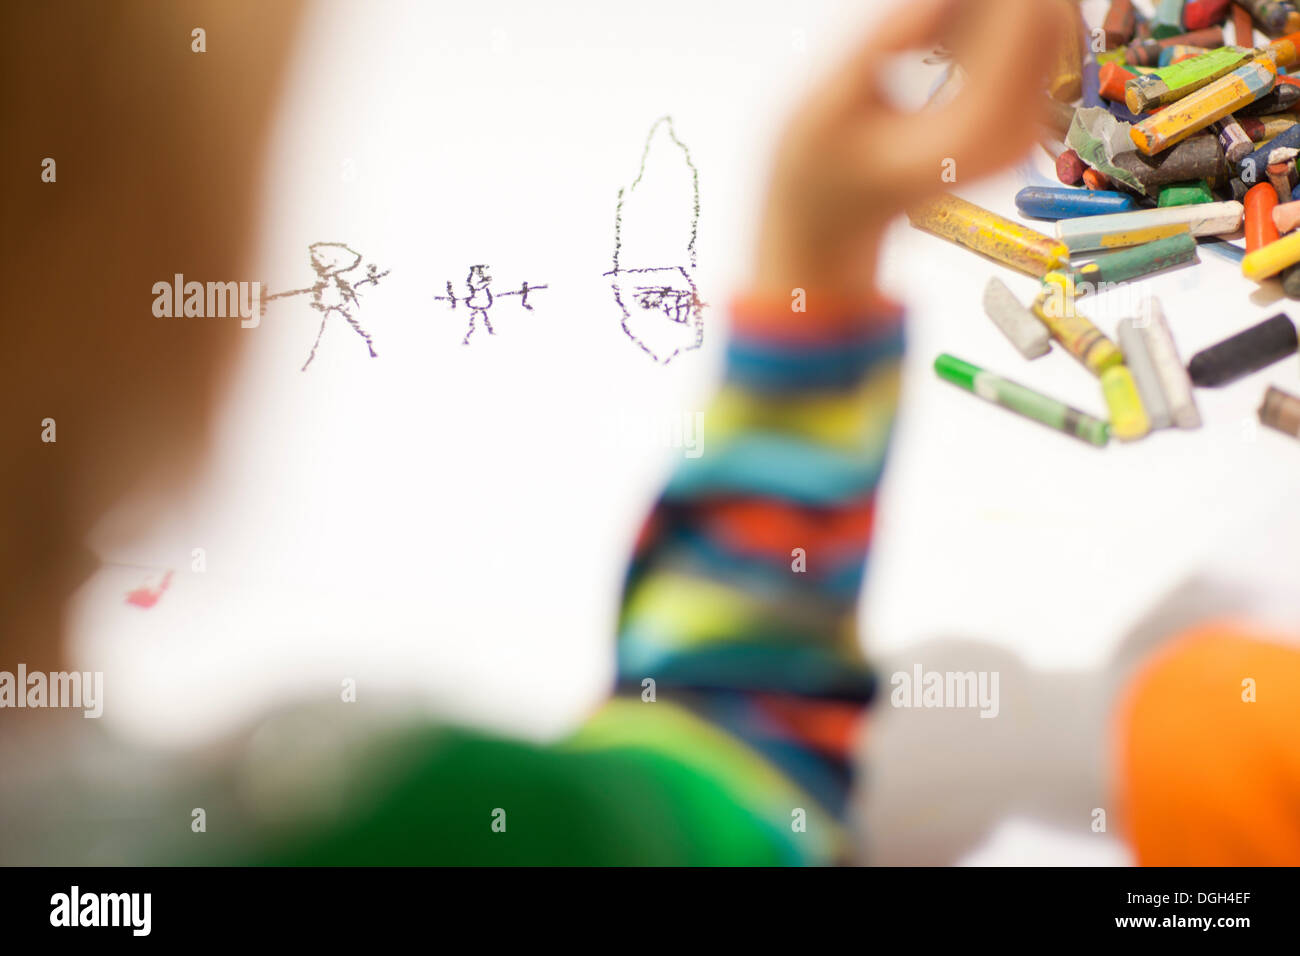 Child drawing with crayons - Stock Image